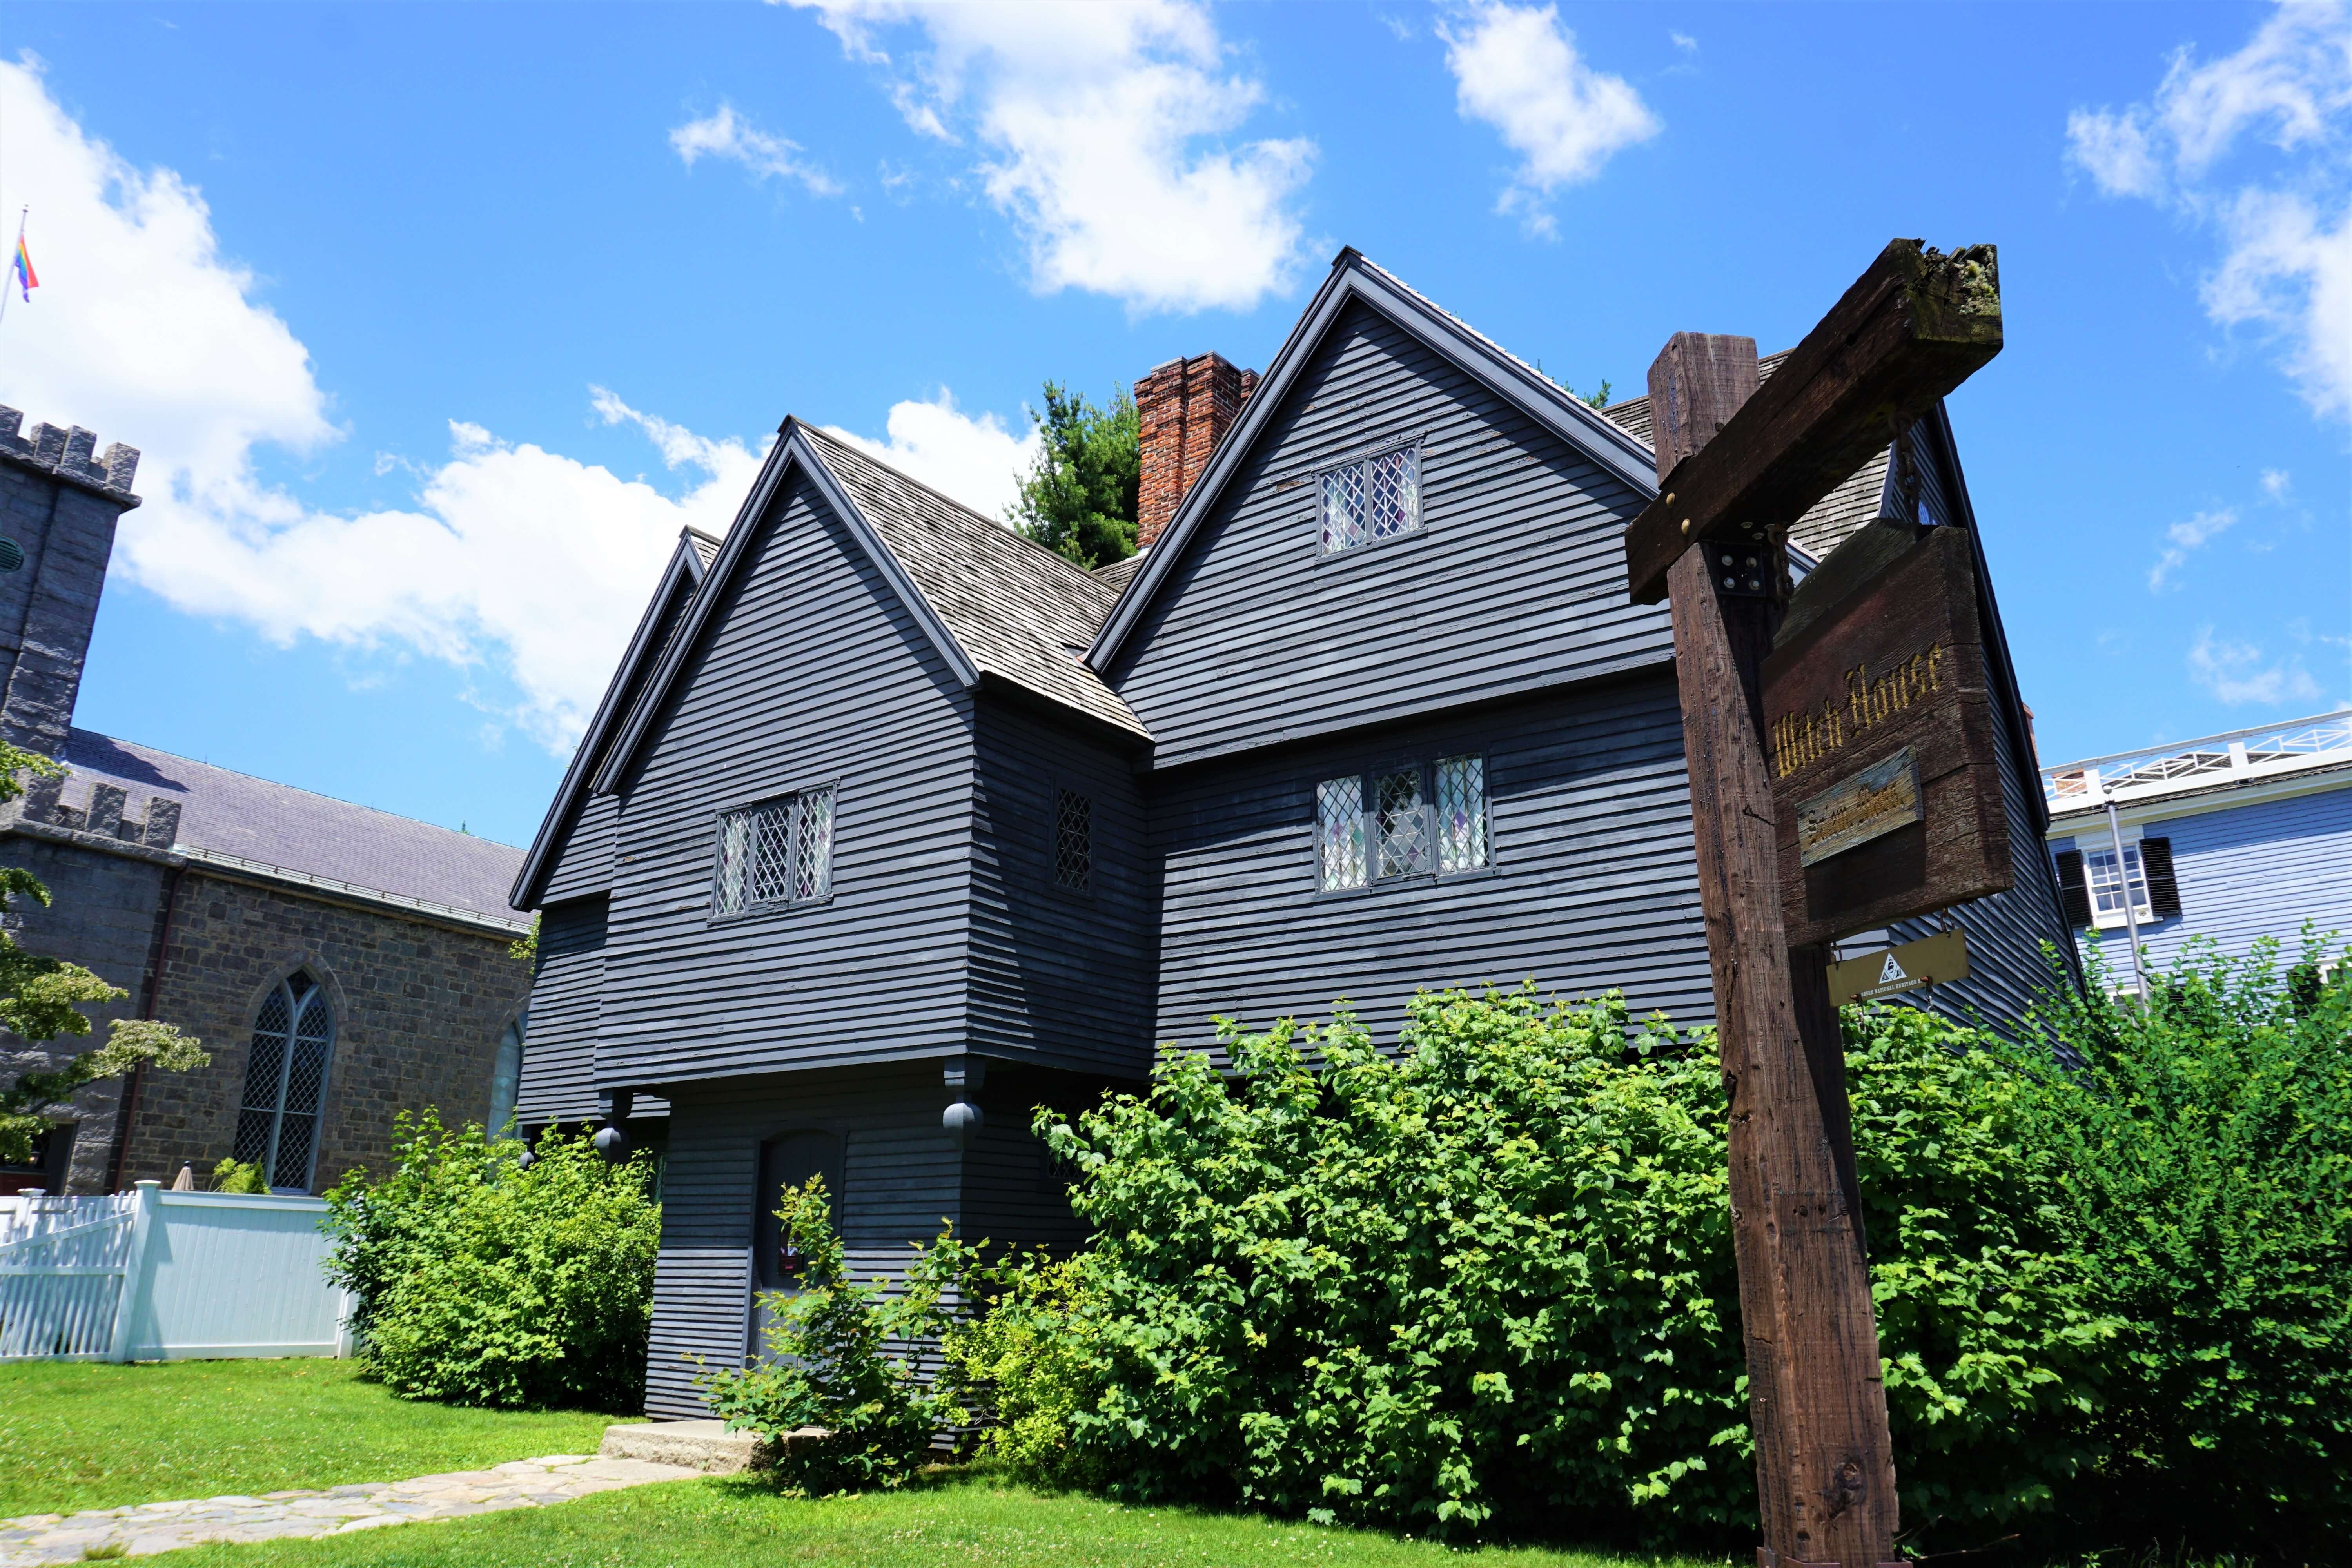 Home of Jonathan Corwin House, a judge in the Salem Witch Trials